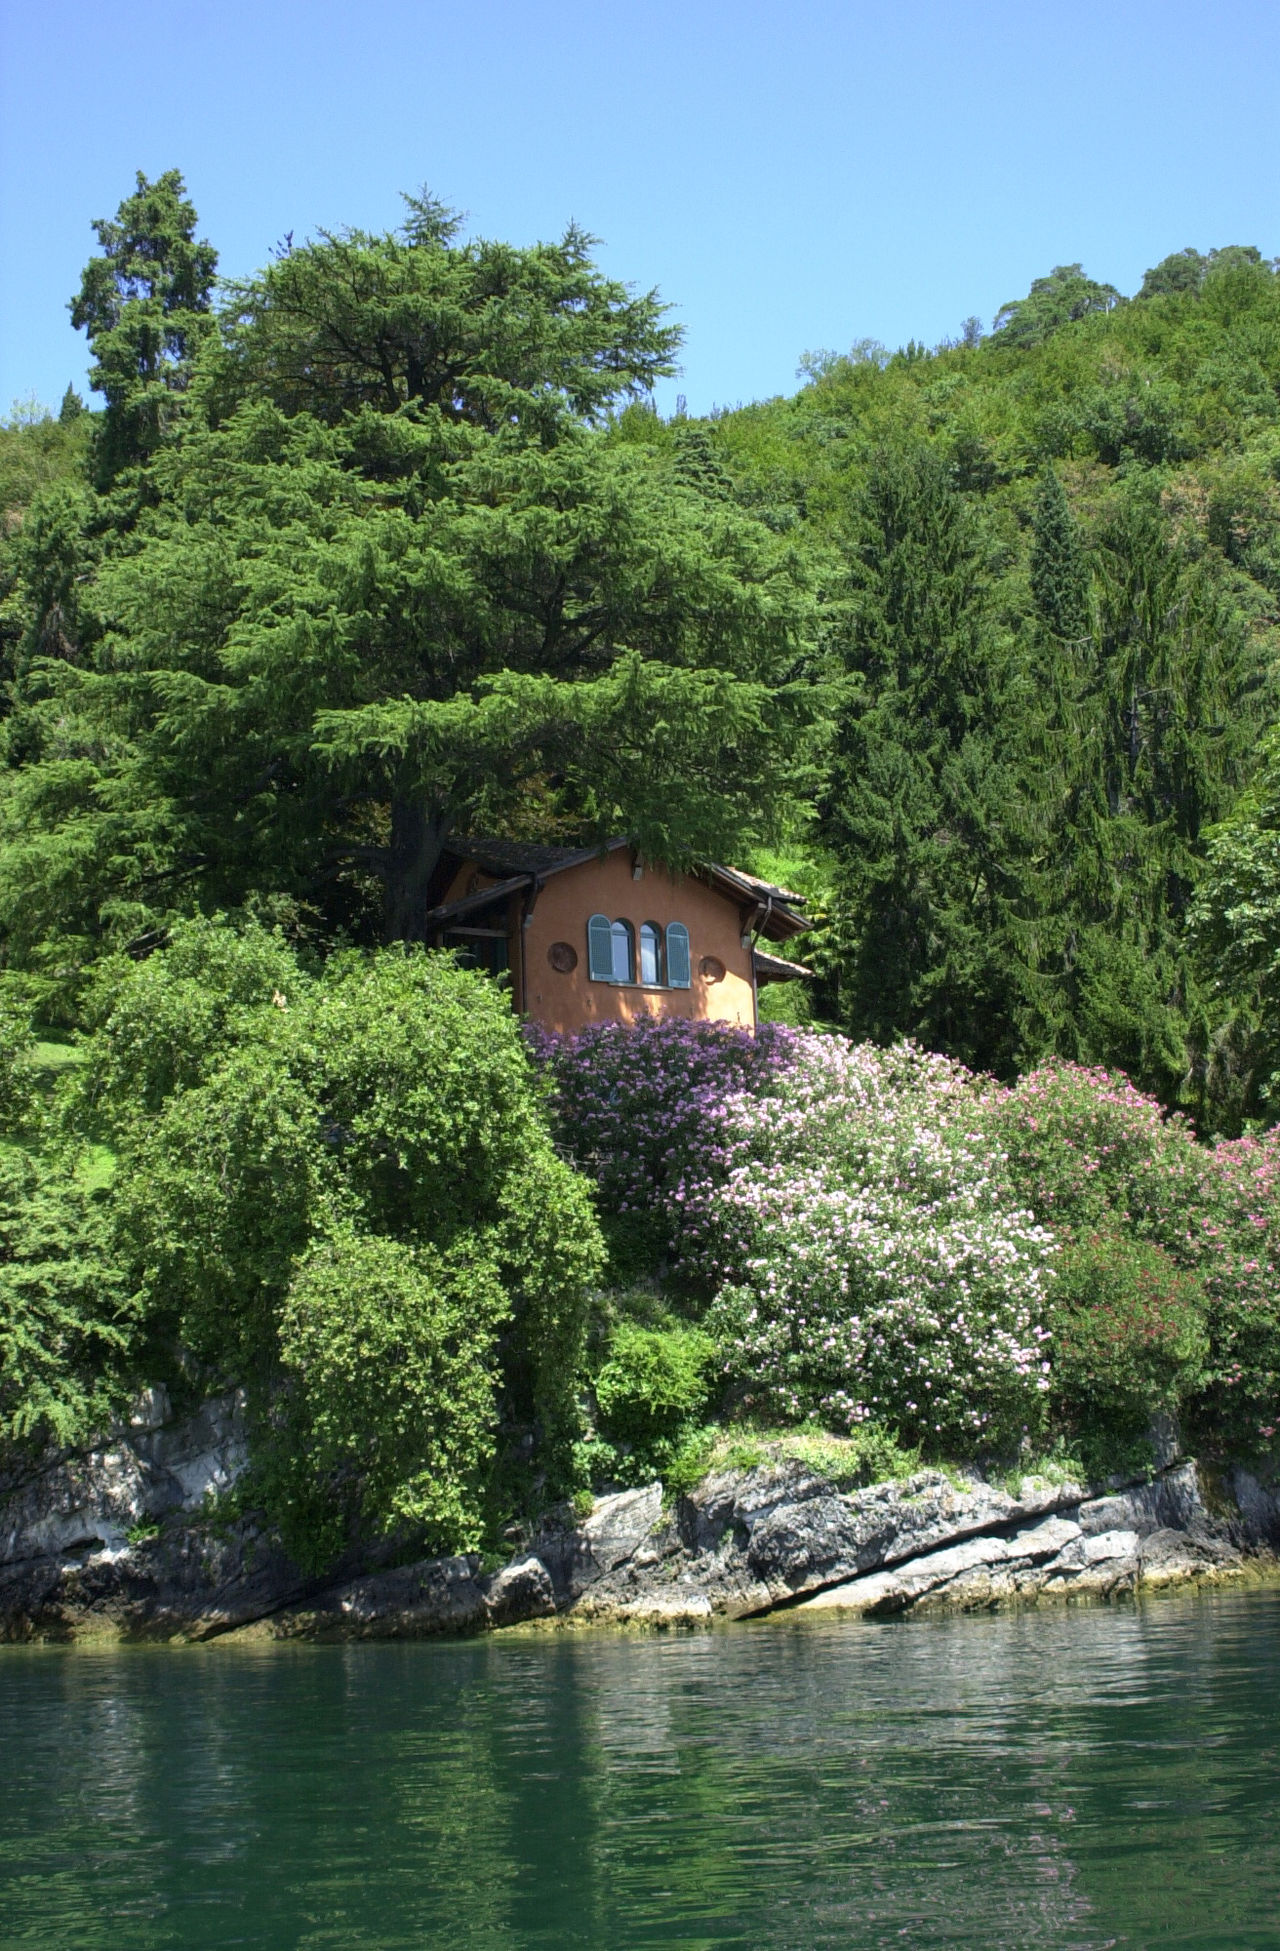 Lake Como Cottage Architecture Beauty In Nature Built Structure Day Green Color House On The Hill House On The Lake House On The Rock House On The Water Lake Como Italy Lake Cottage Nature No People Outdoors Sky Tree Water